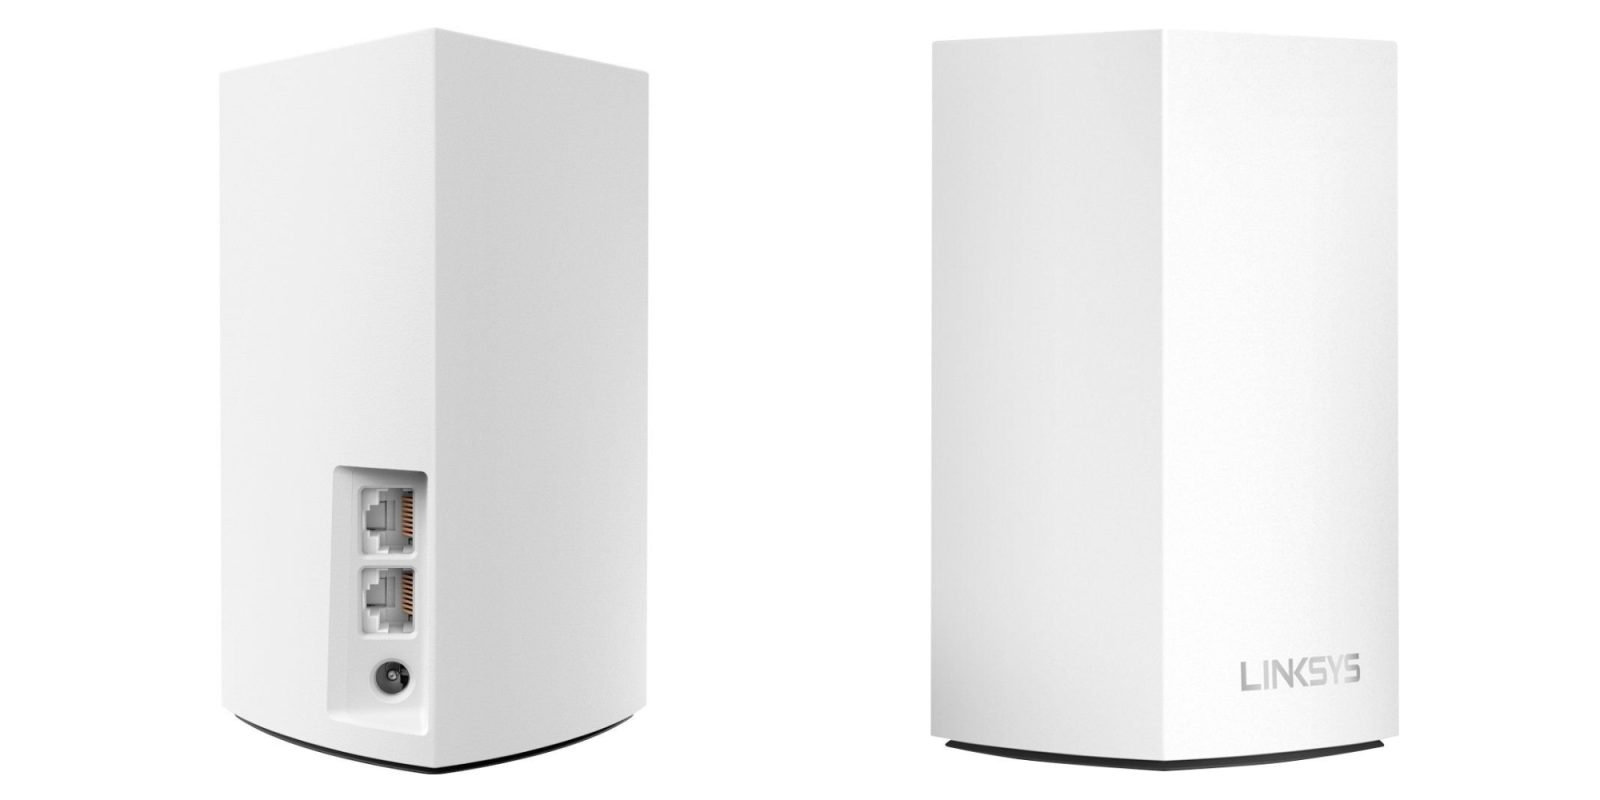 Upgrade to mesh for $130 with this Linksys Velop 802.11ac System at $70 off